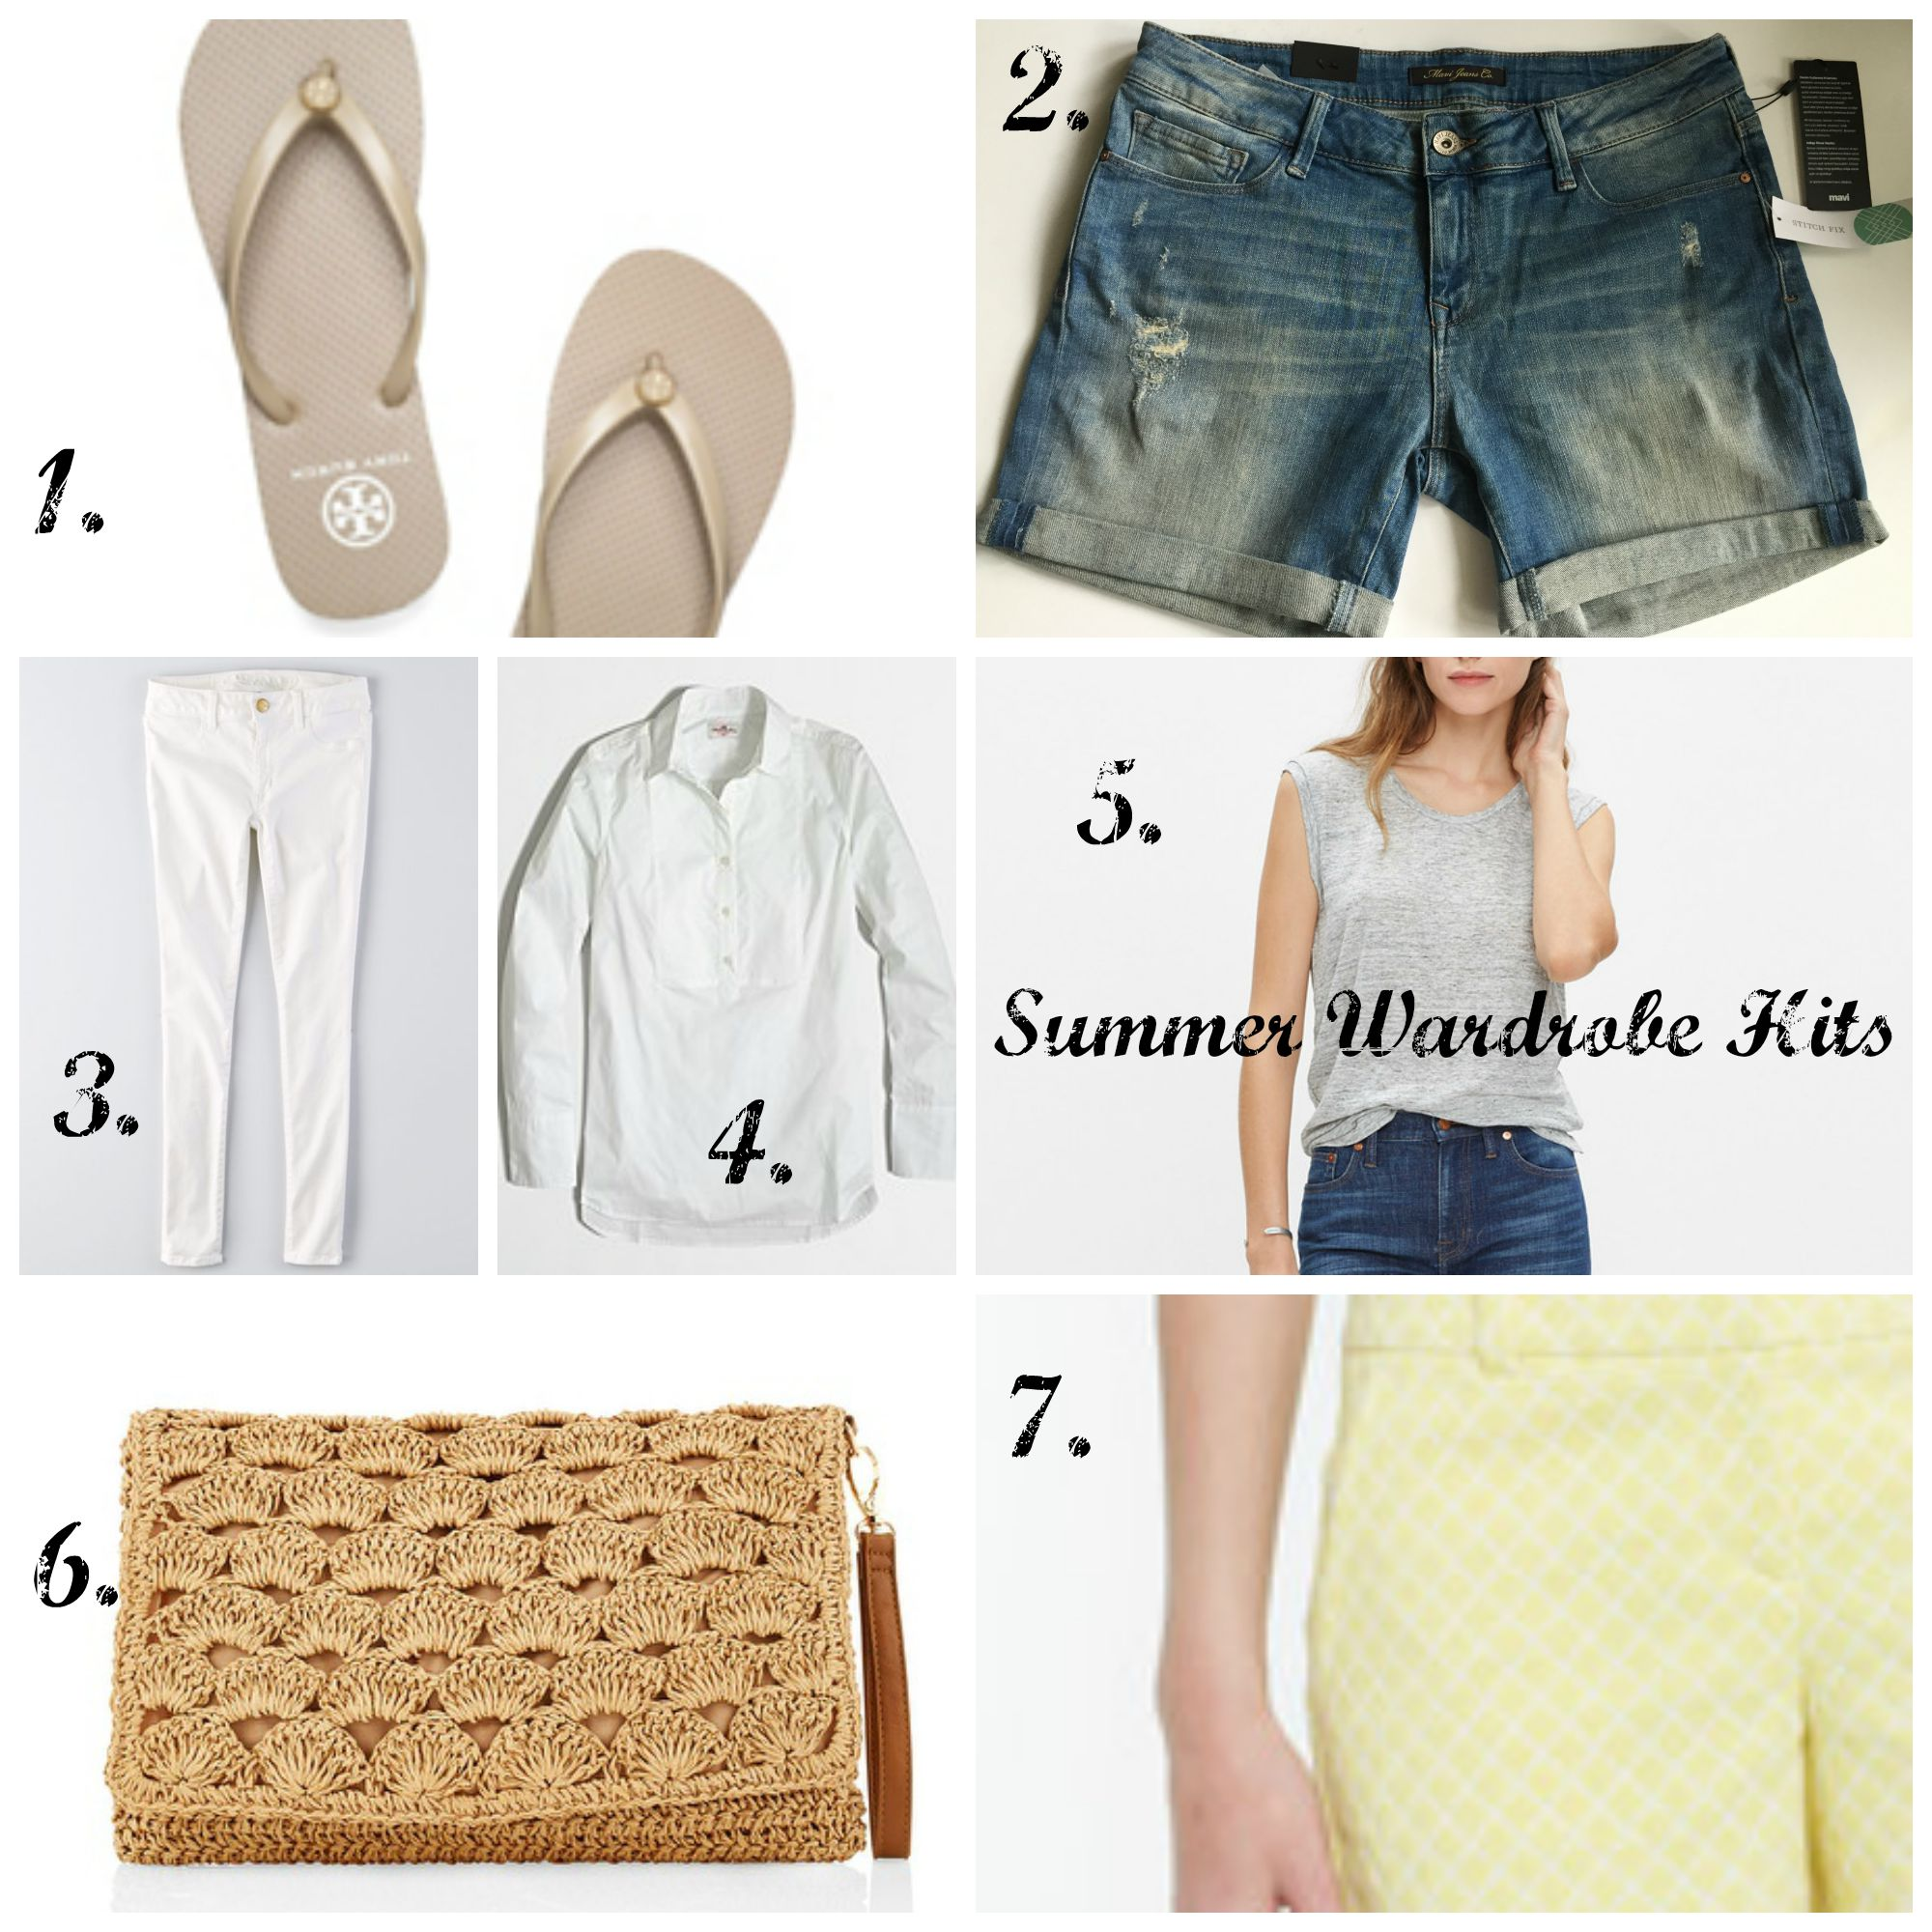 Summer Wardrobe Hits by www.mylifefromhome.com